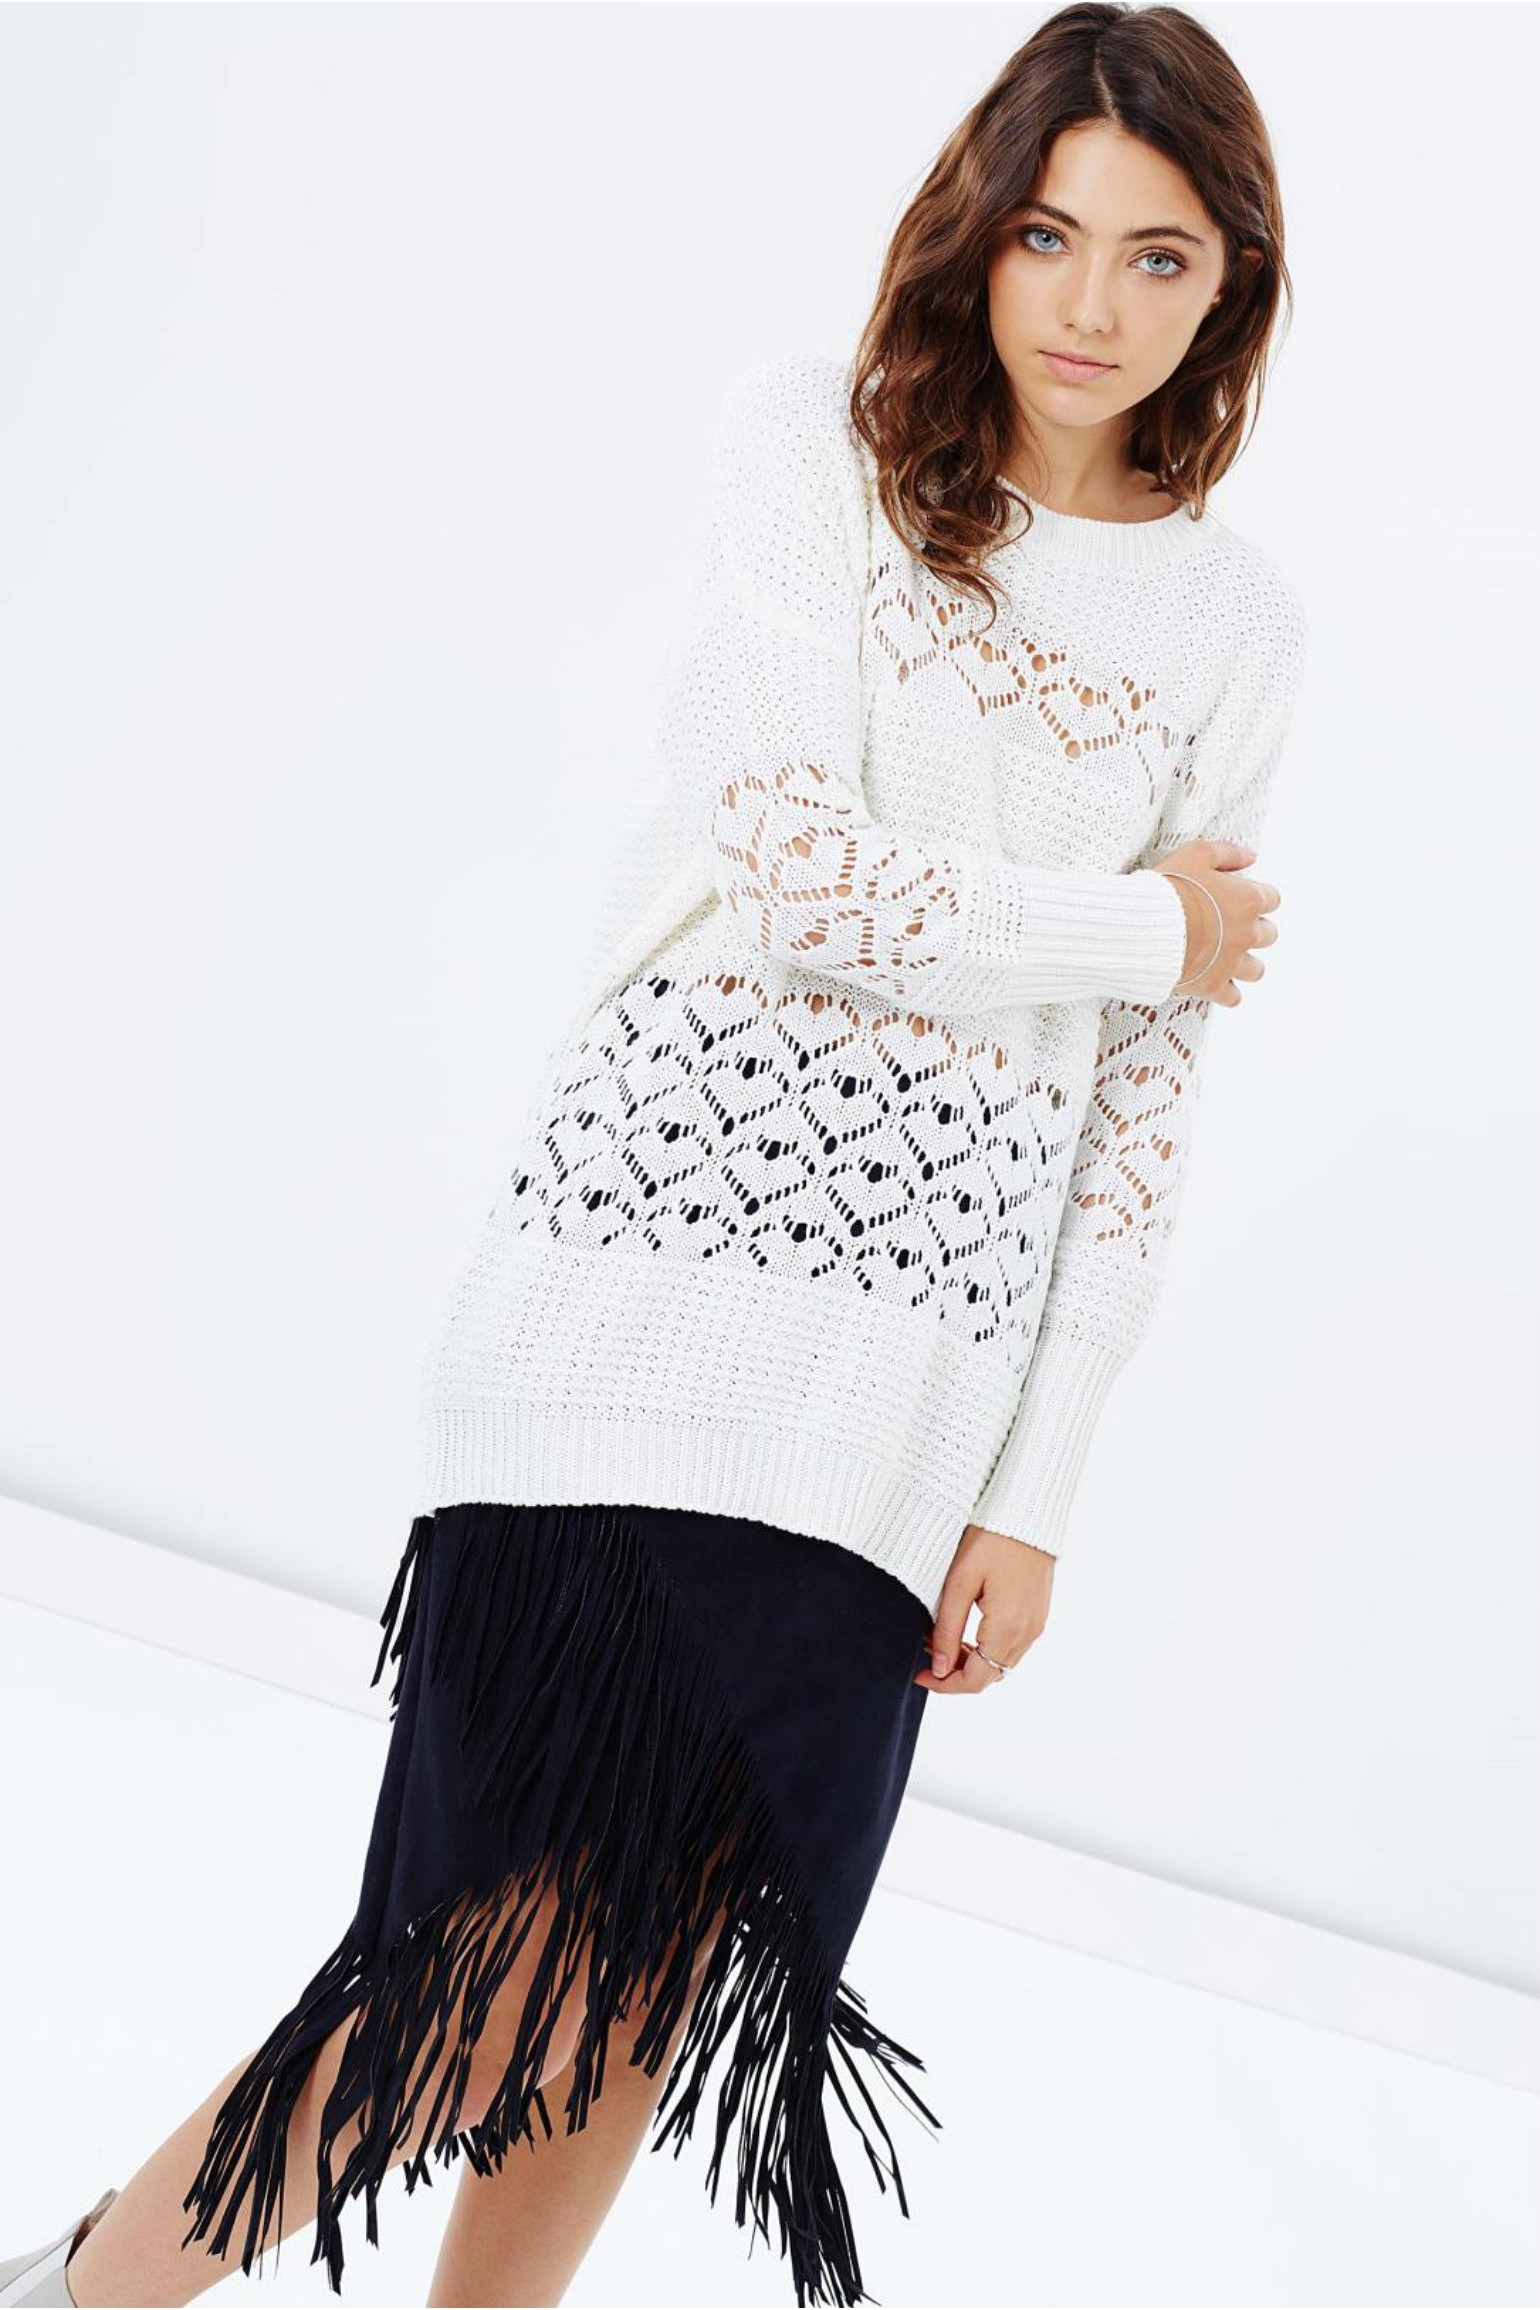 All About Eve Gypsy Love Knit White